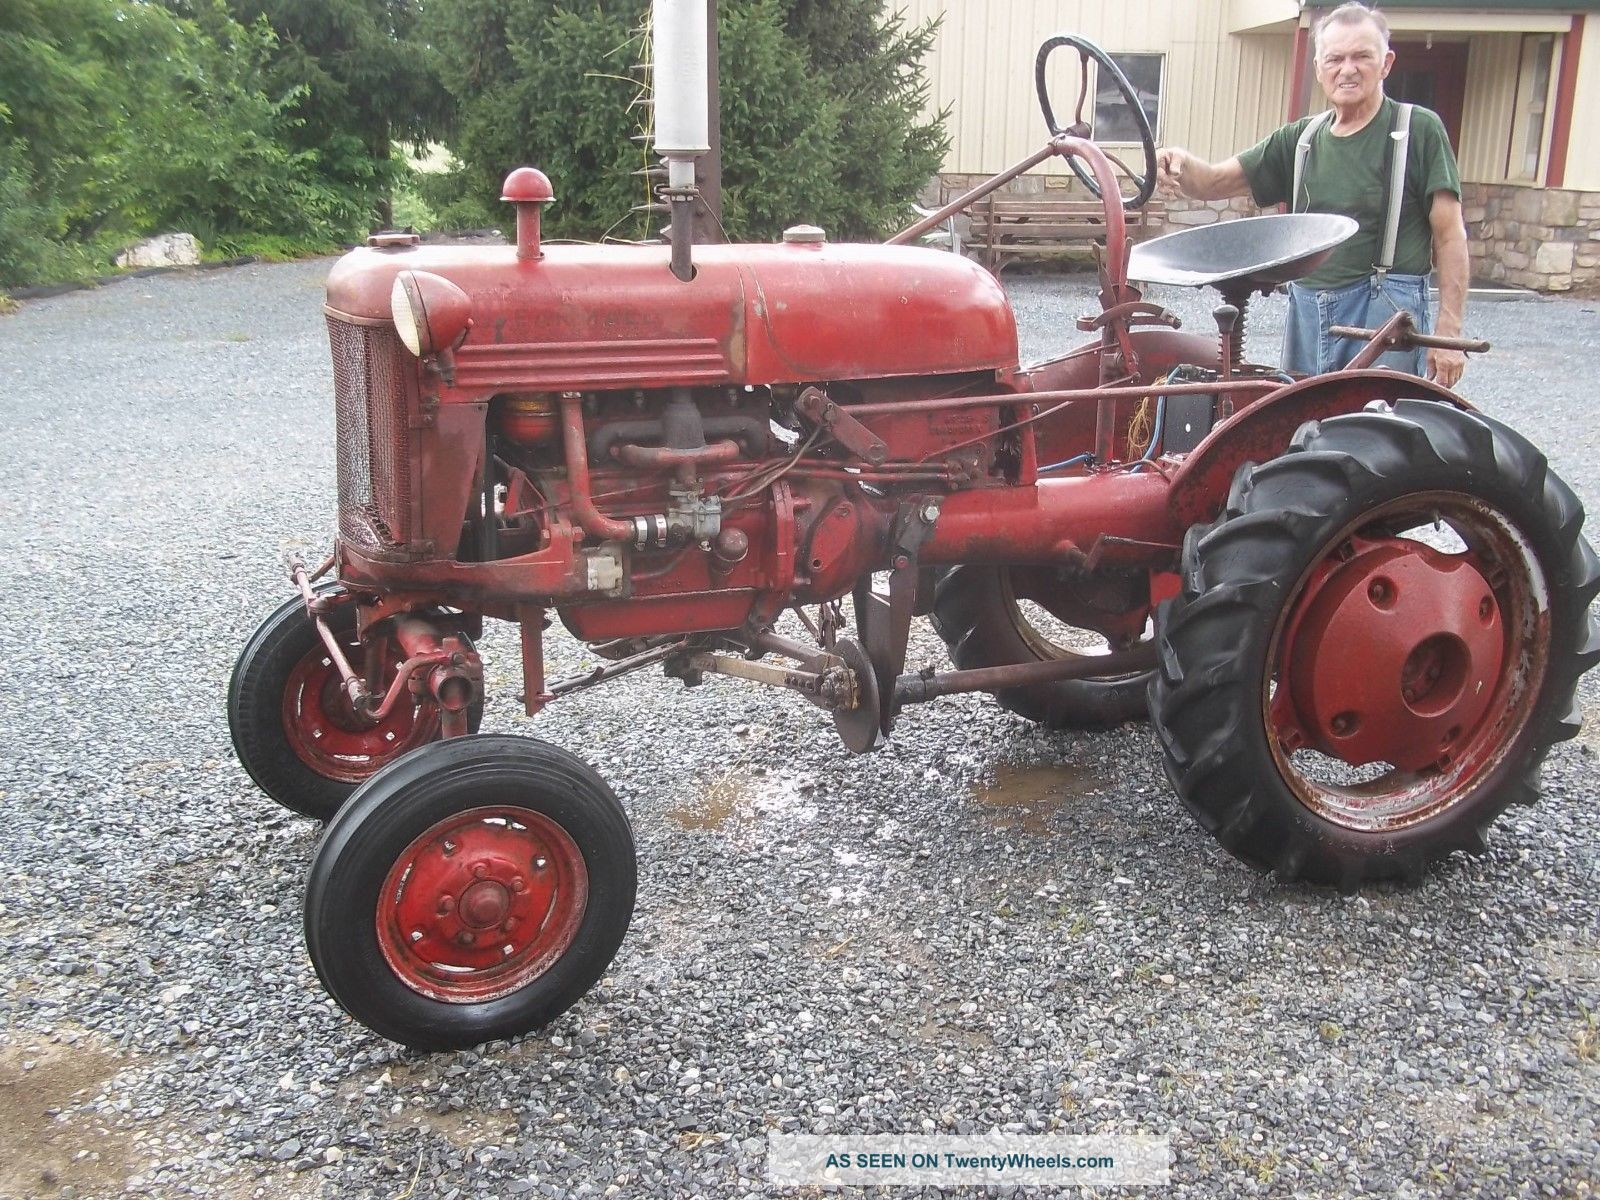 Farmall Tractor Painting : Farmall cub tractor with sickel bar mower culltivators paint